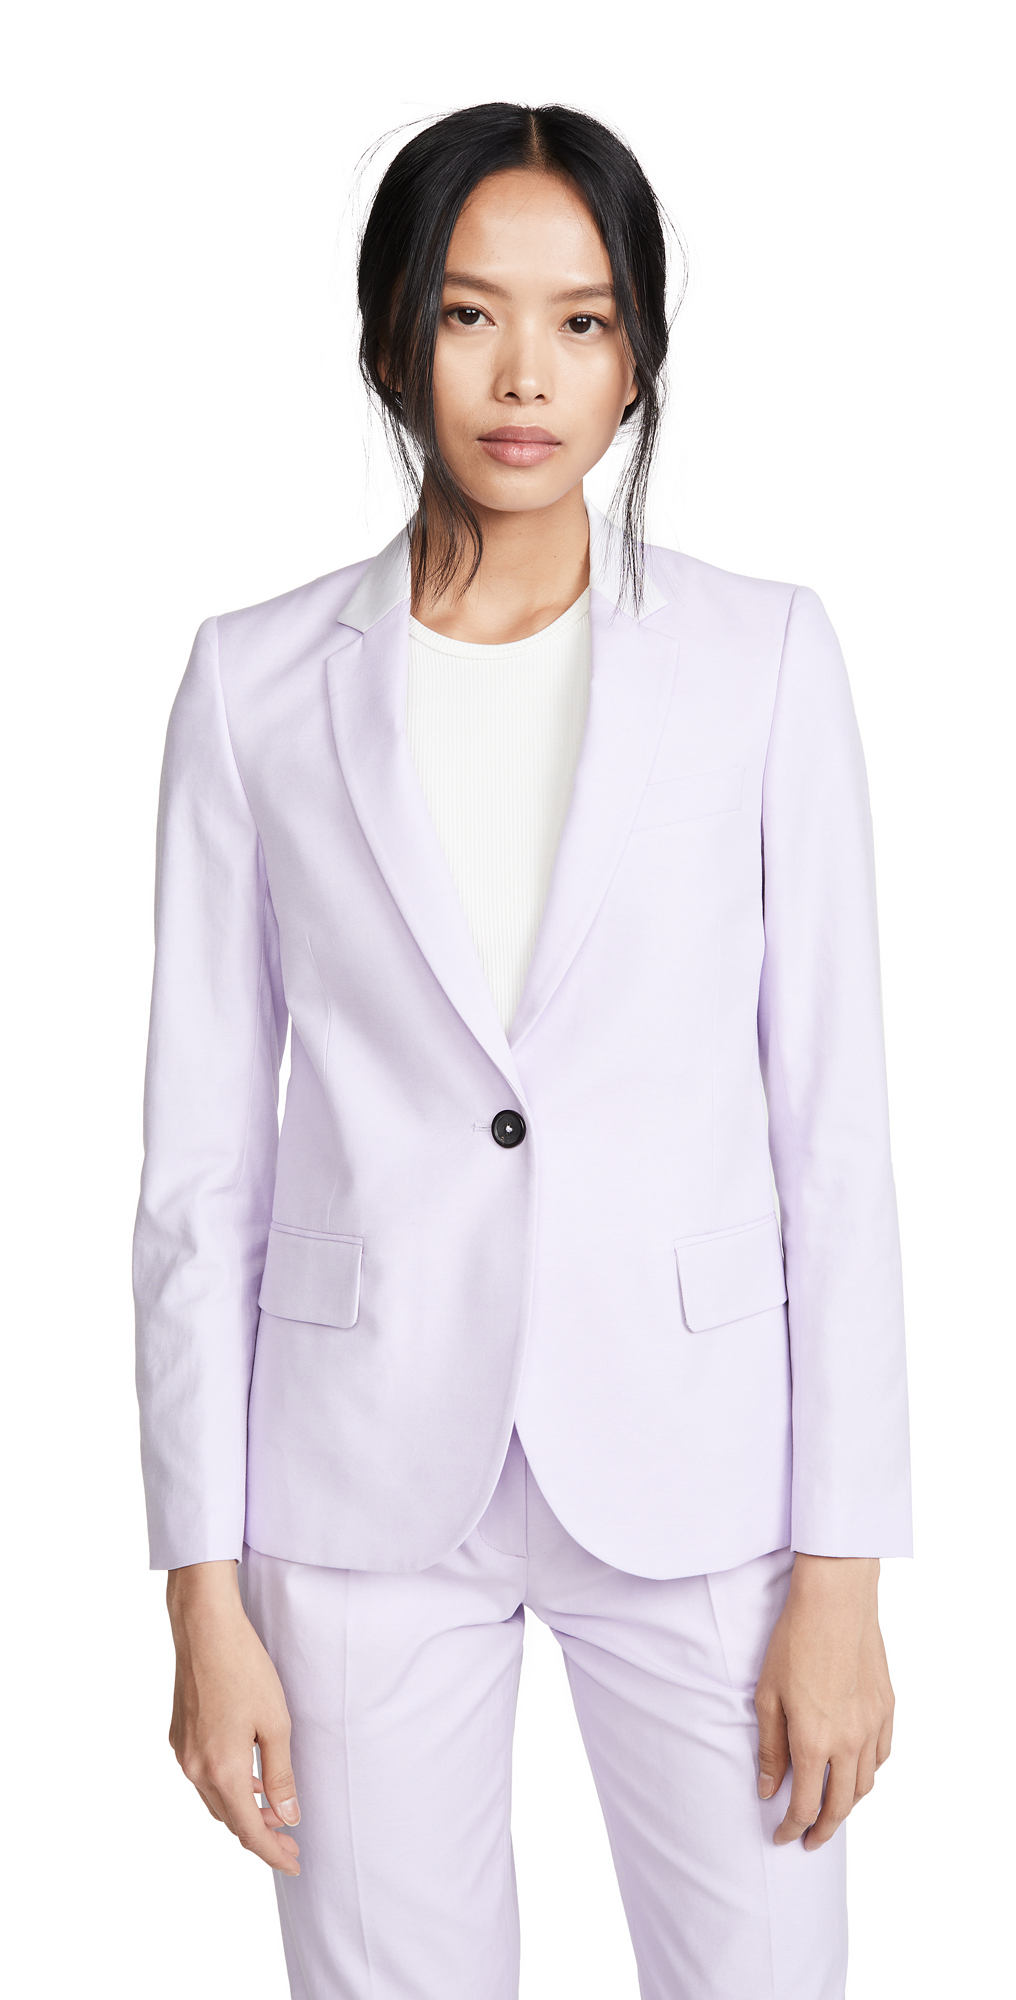 Paul Smith Tailored Blazer